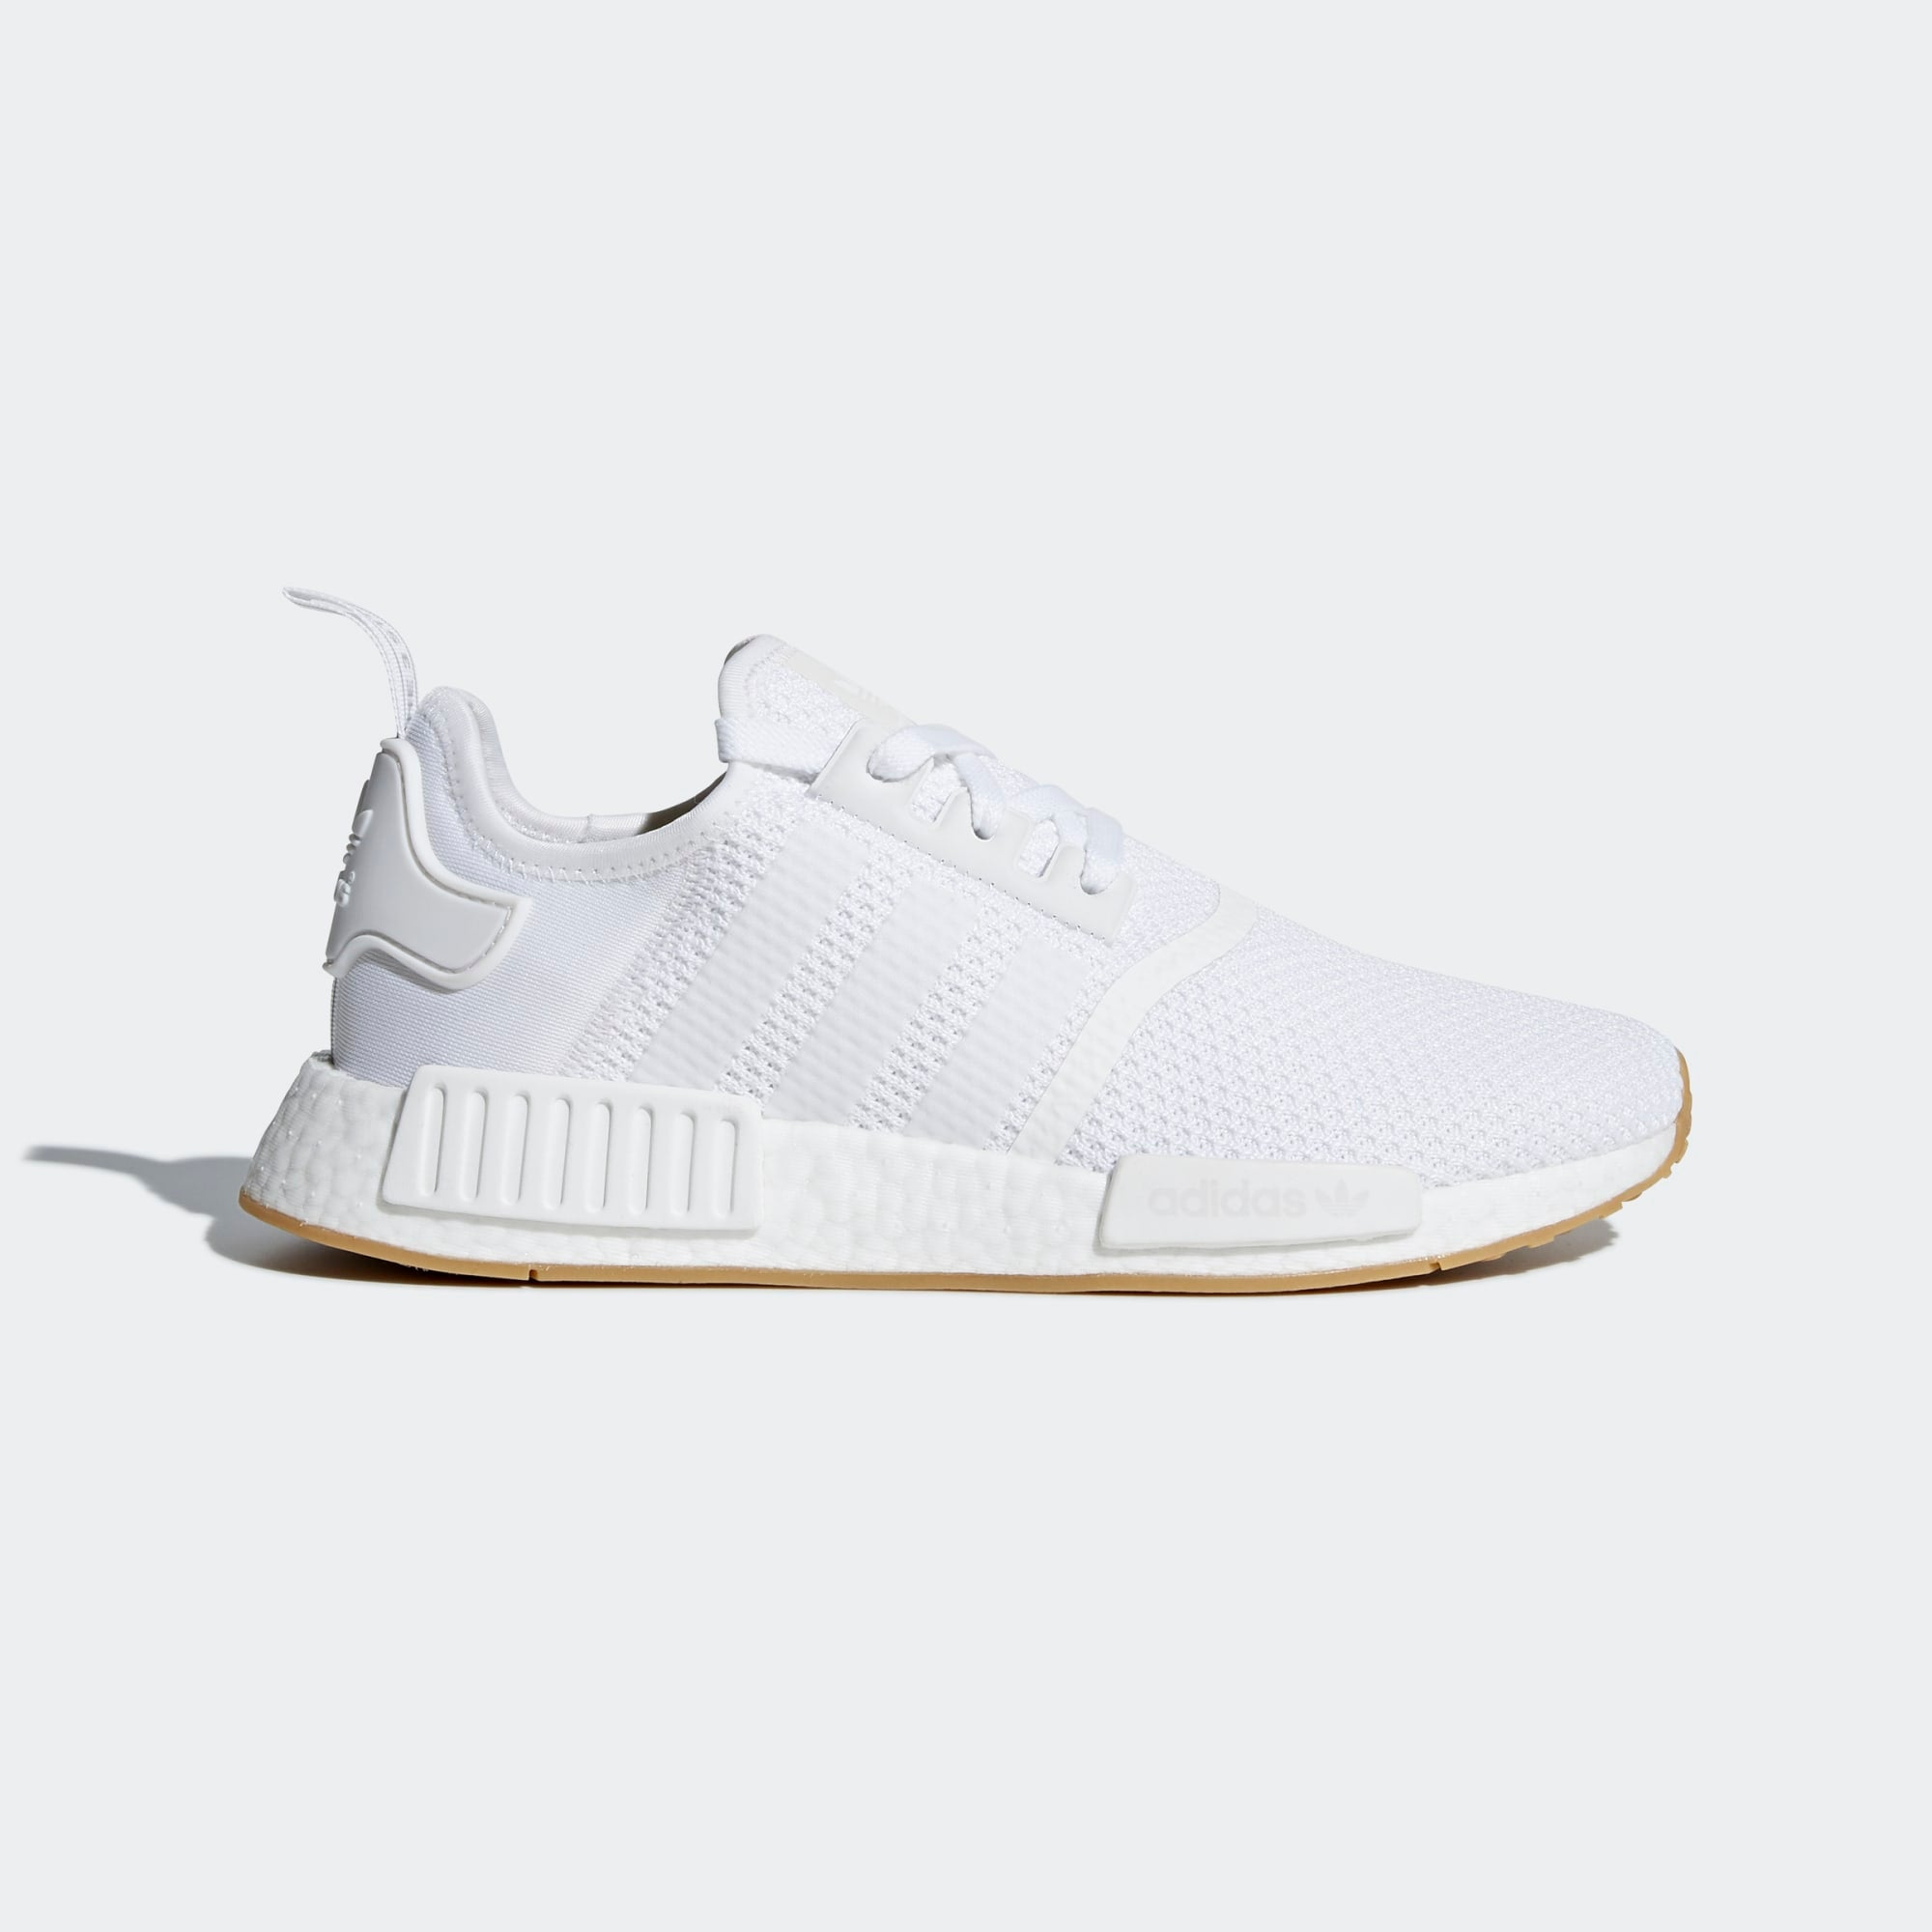 ADIDAS M'S FOOTWEAR NMD_R1 - CLOUD WHITE/CLOUD WHITE